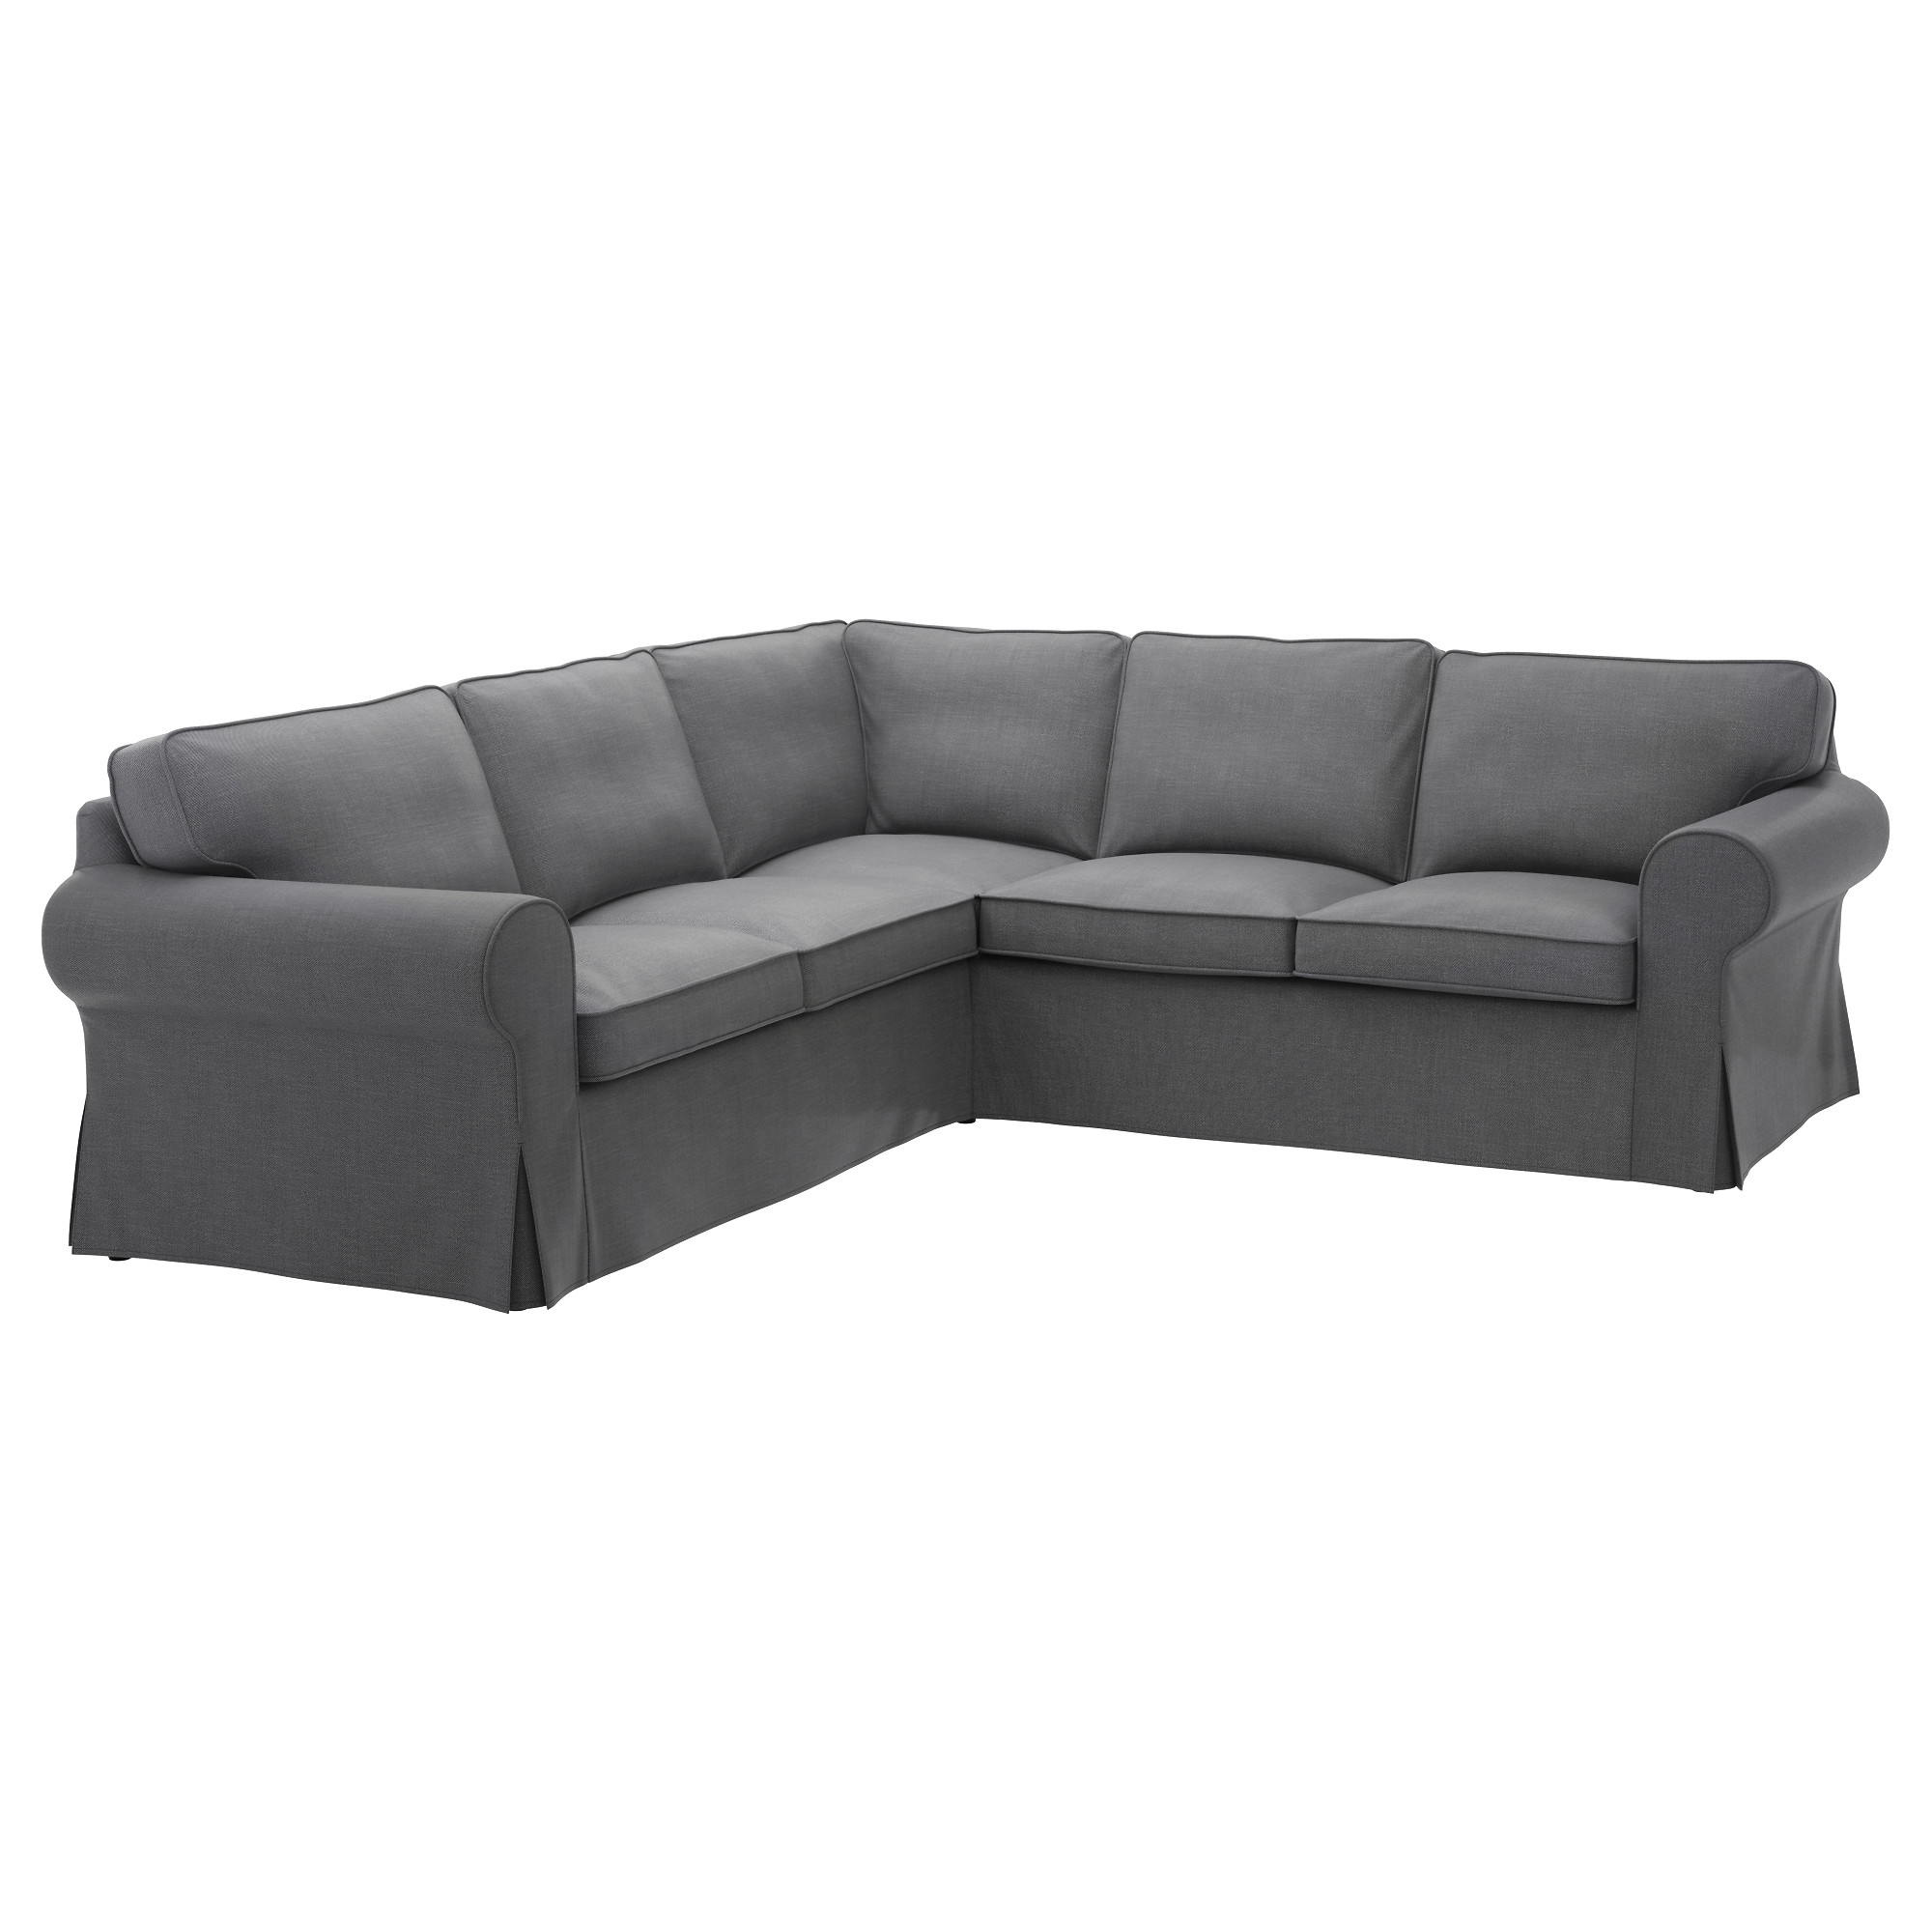 sc 1 st  Ikea : sectional sofas images - Sectionals, Sofas & Couches